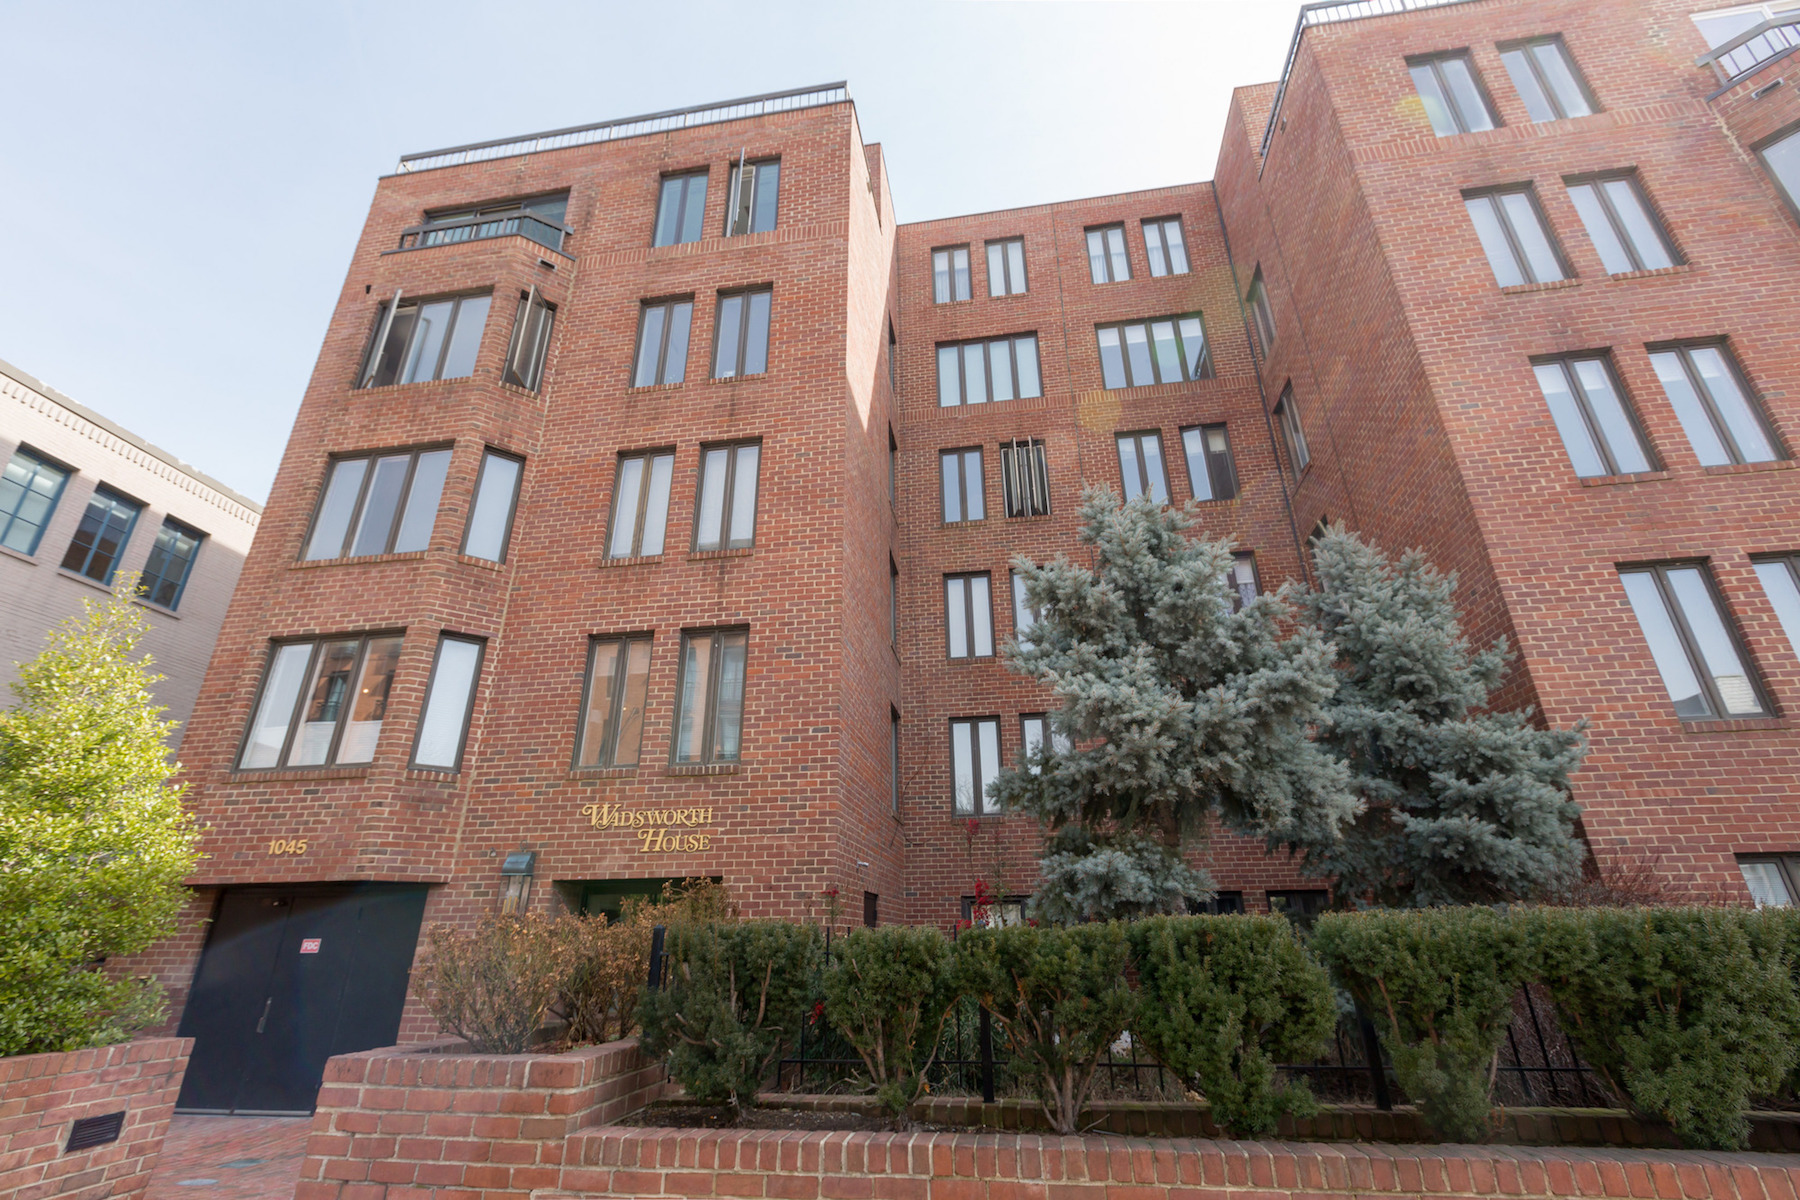 Condominium for Sale at Georgetown 1045 31st Street Nw 401 Georgetown, Washington, District Of Columbia, 20007 United States